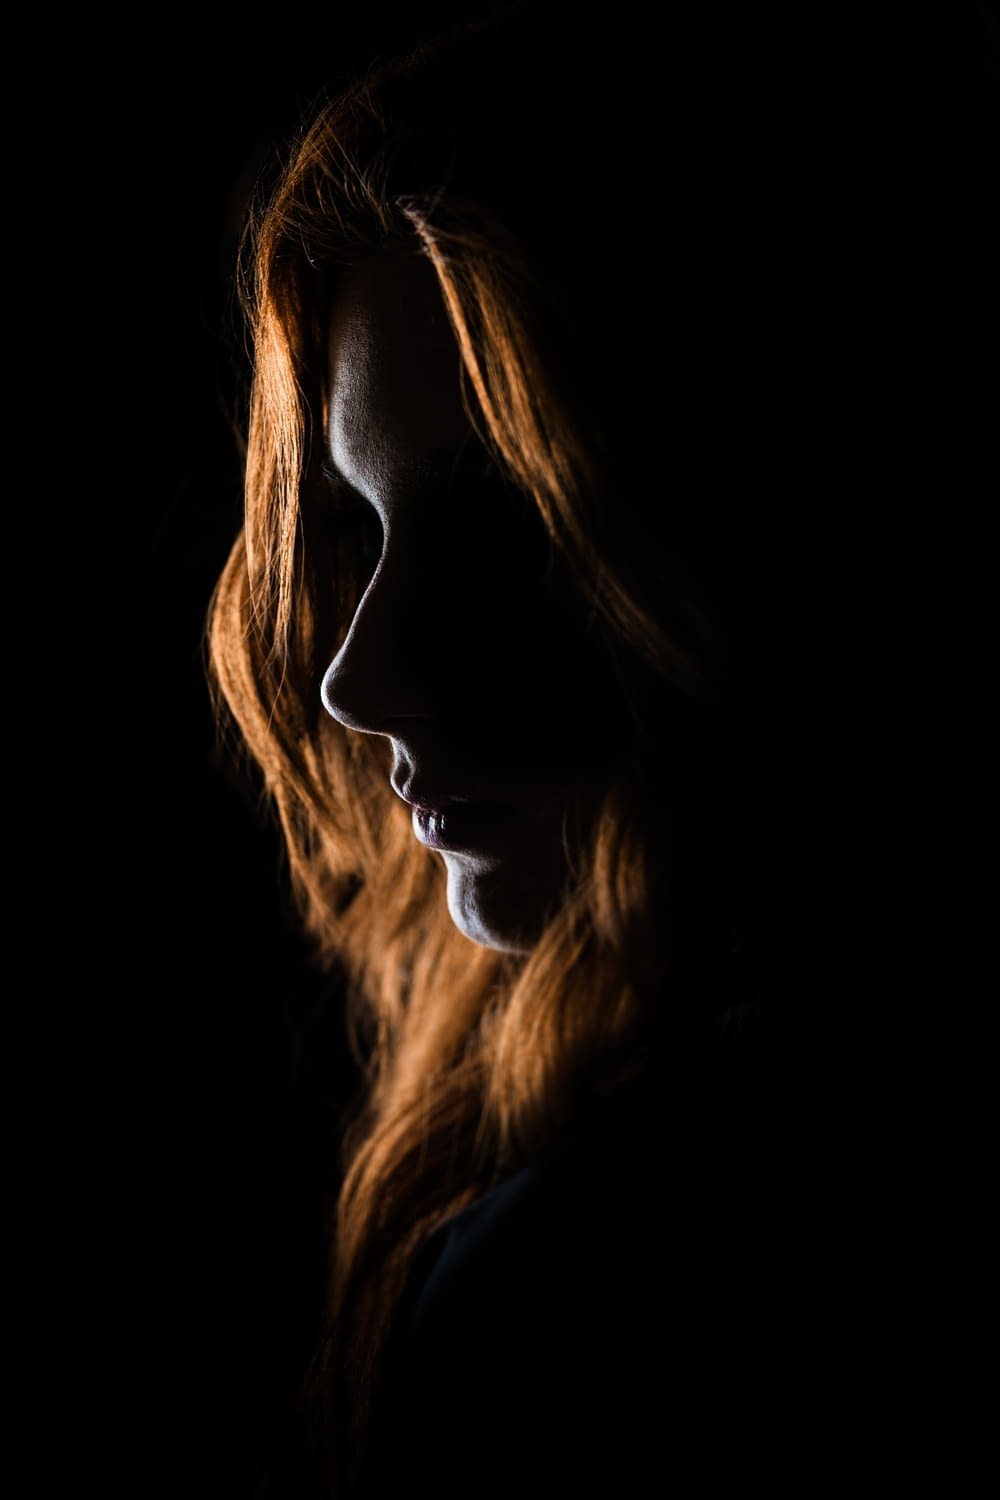 woman's face on black background